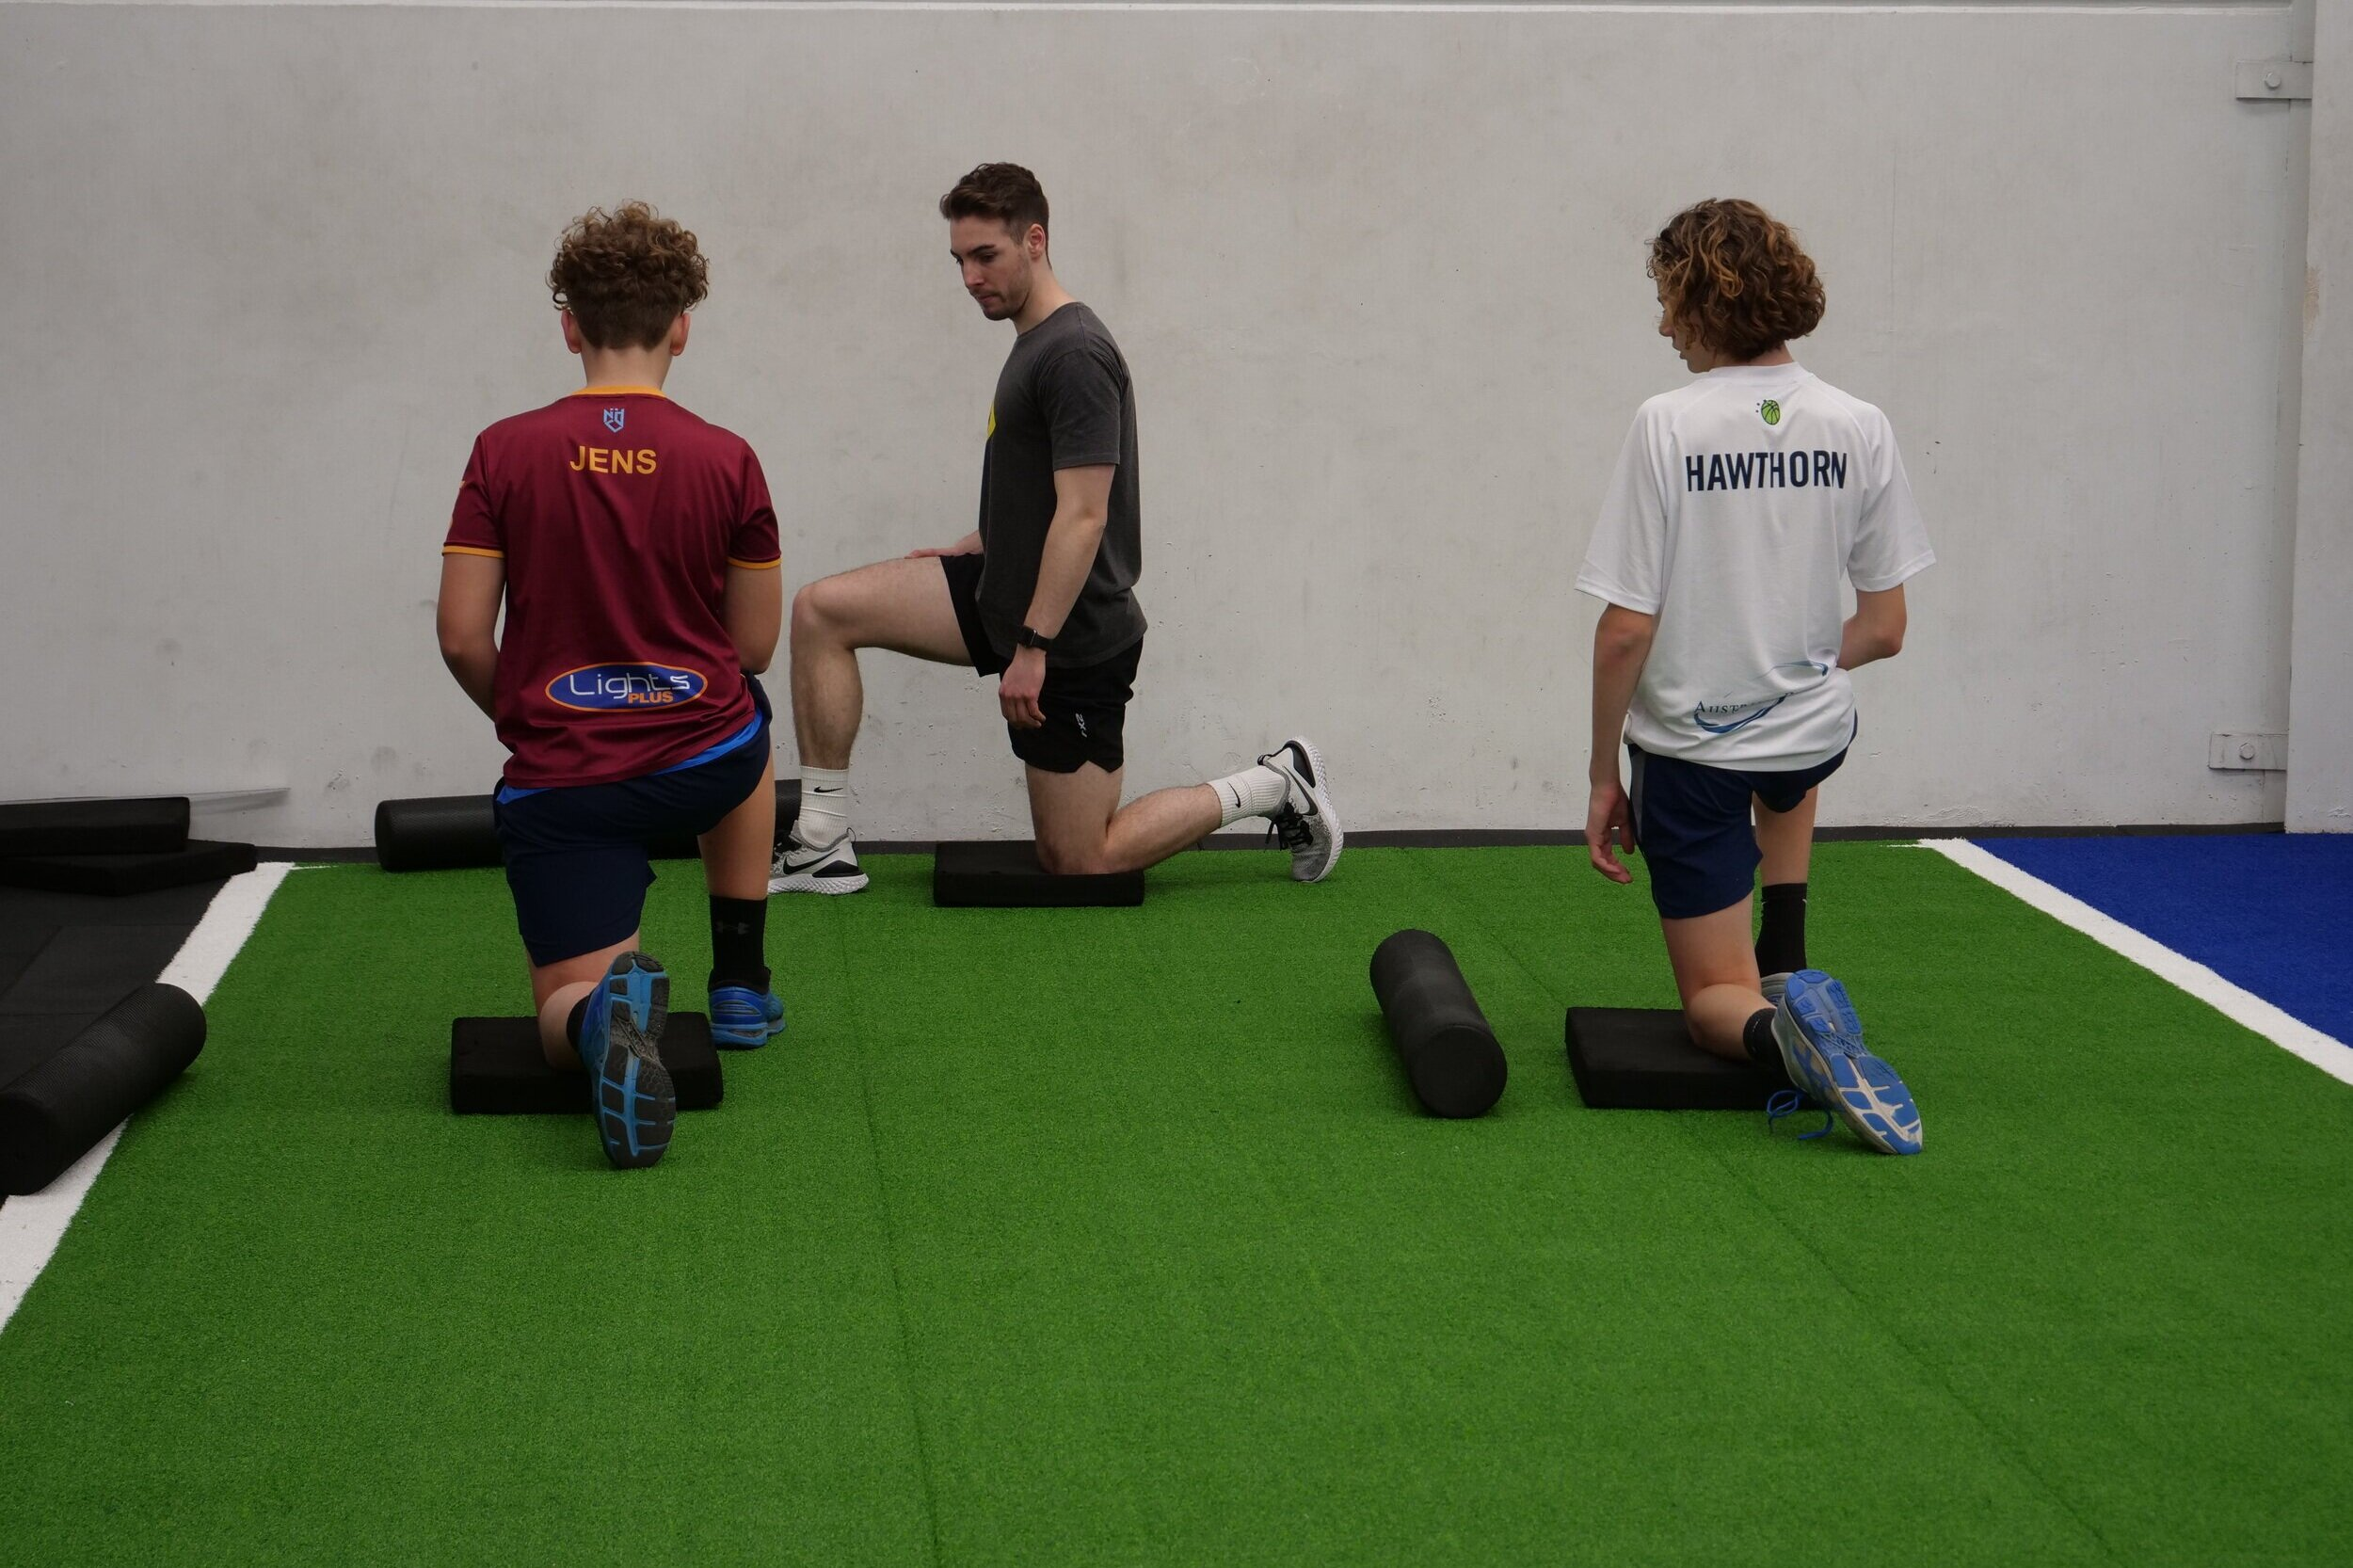 One hour performance testing session - Undergo an injury assessment and baseline performance testing session to help us see where you are now and where you need to be.